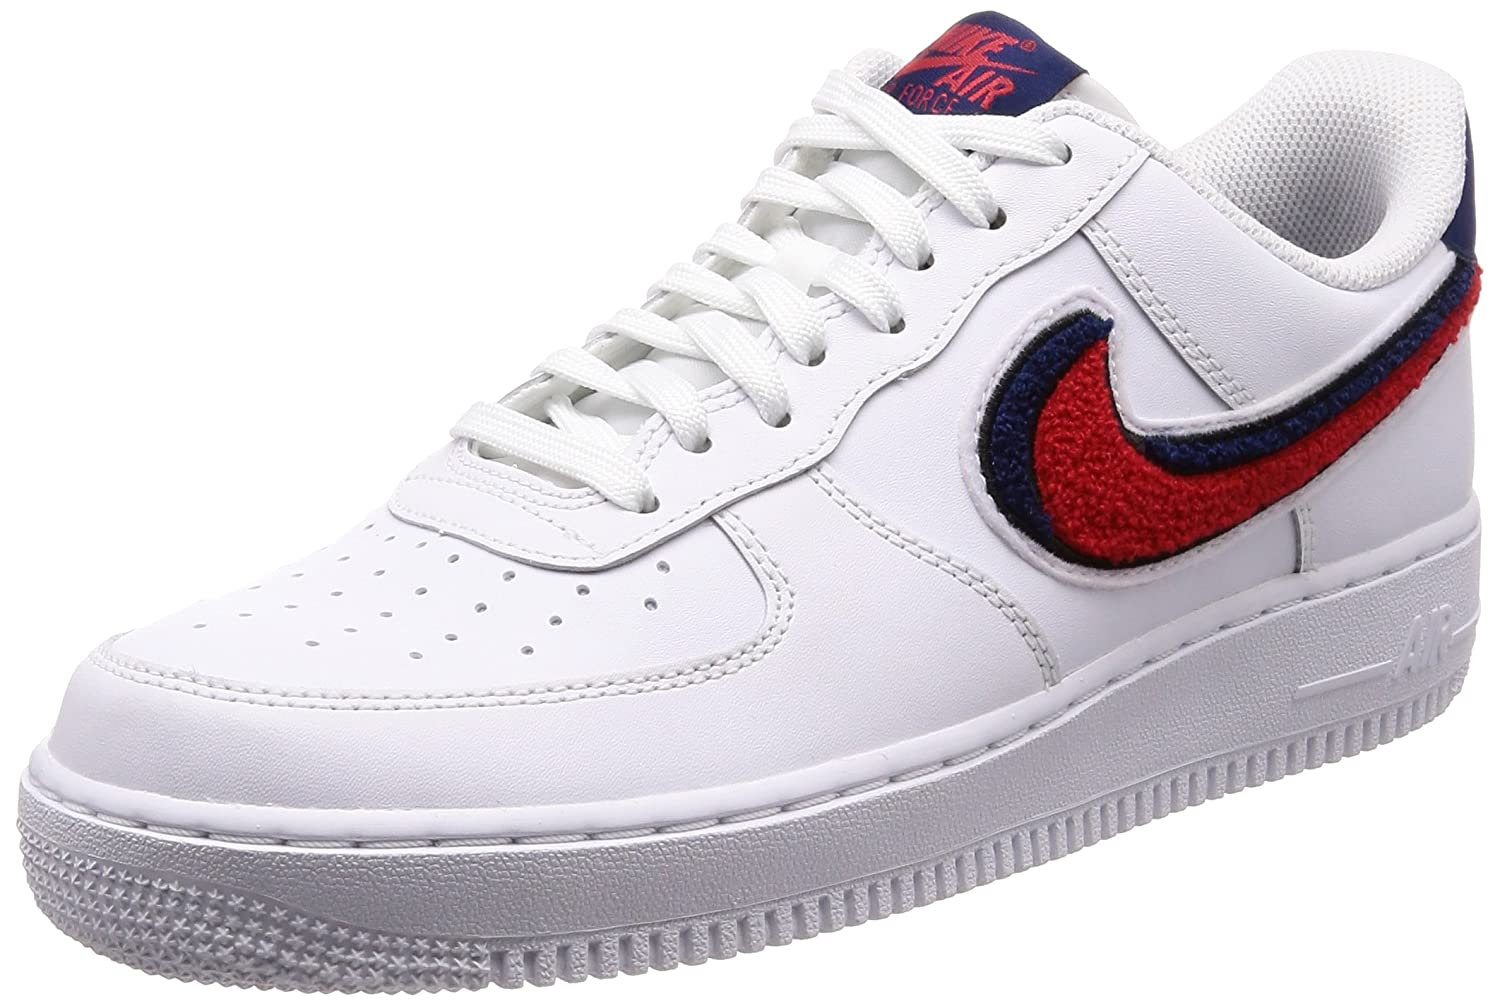 White, university red- bluee void Nike - Air Force One